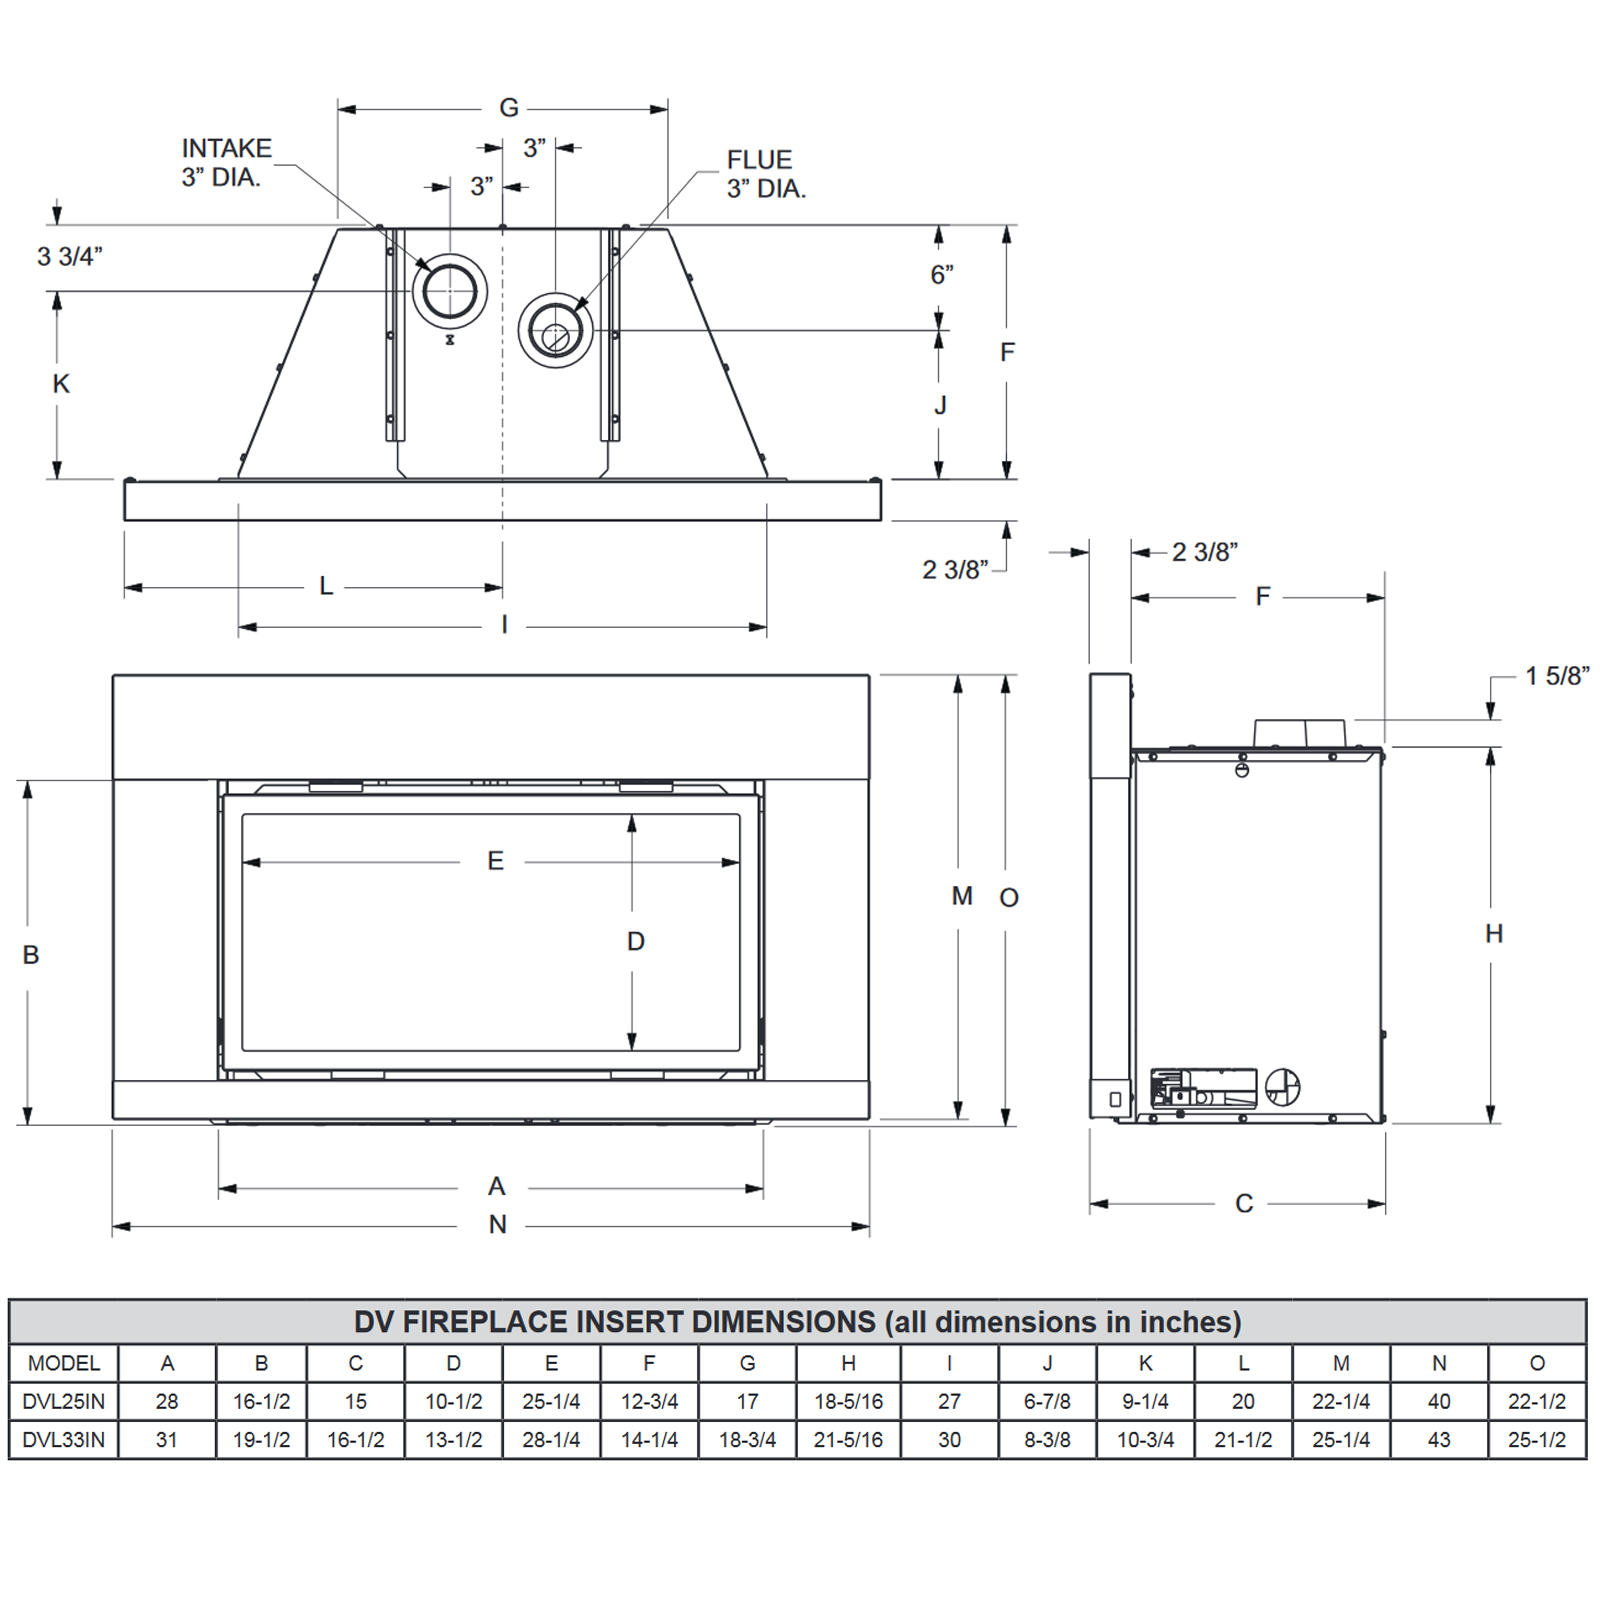 DVL25 Technical Drawing 1